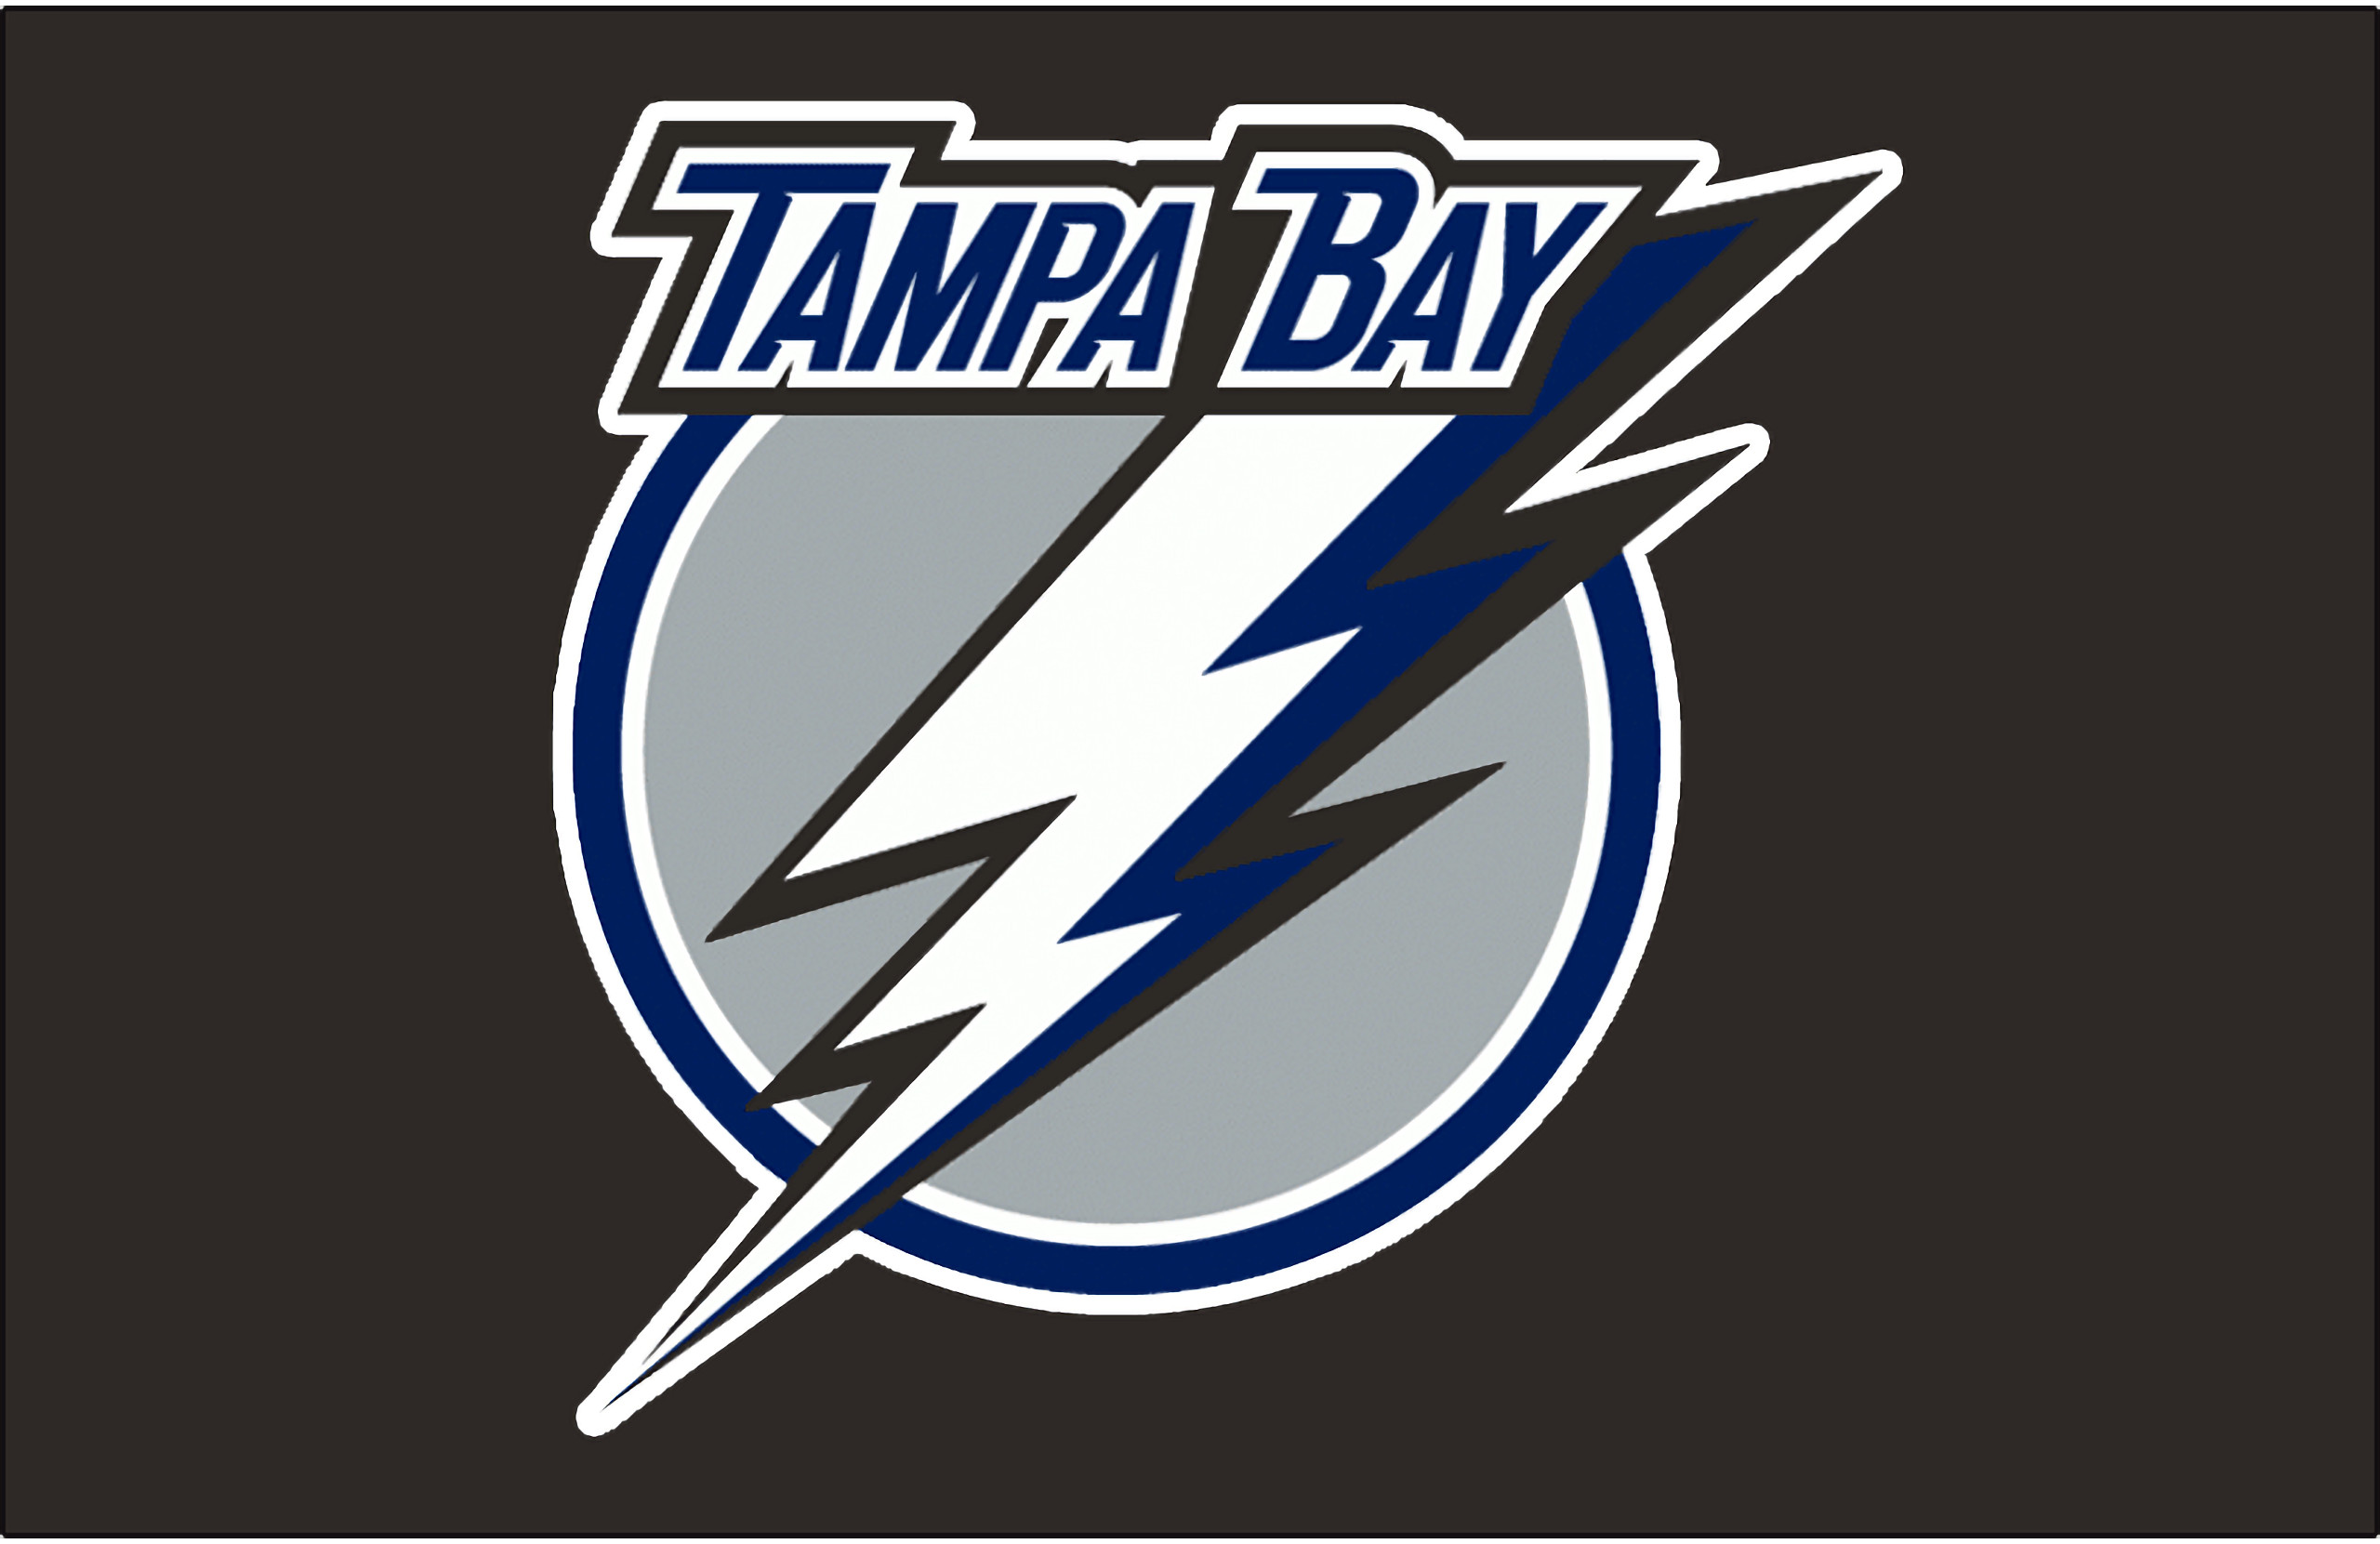 2560x1661 Tampa Bay Lightning HD Wallpaper | Background Image |  | ID:859295  - Wallpaper Abyss